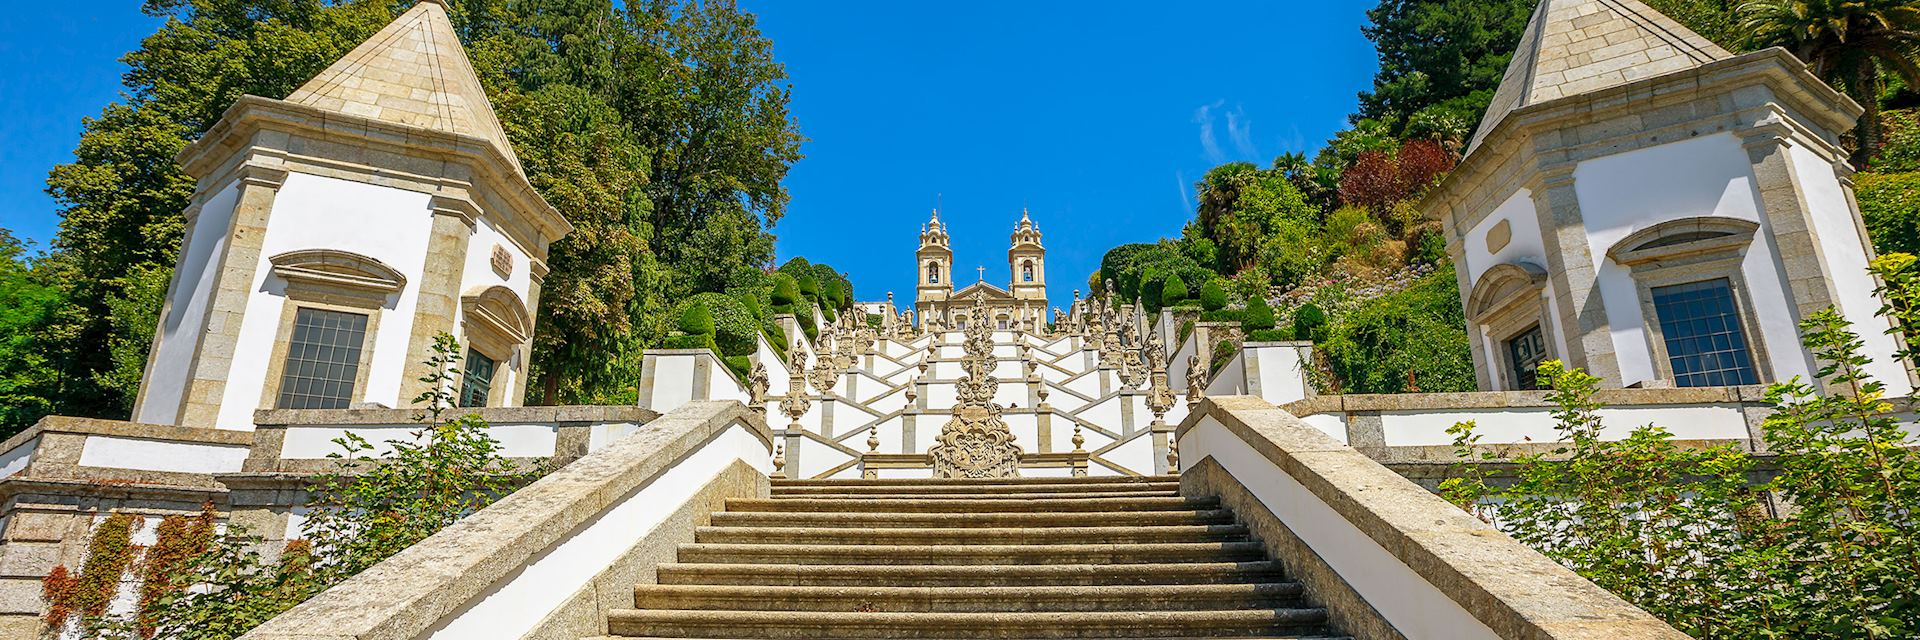 Staircase of Bom Jesus do Monte, Braga